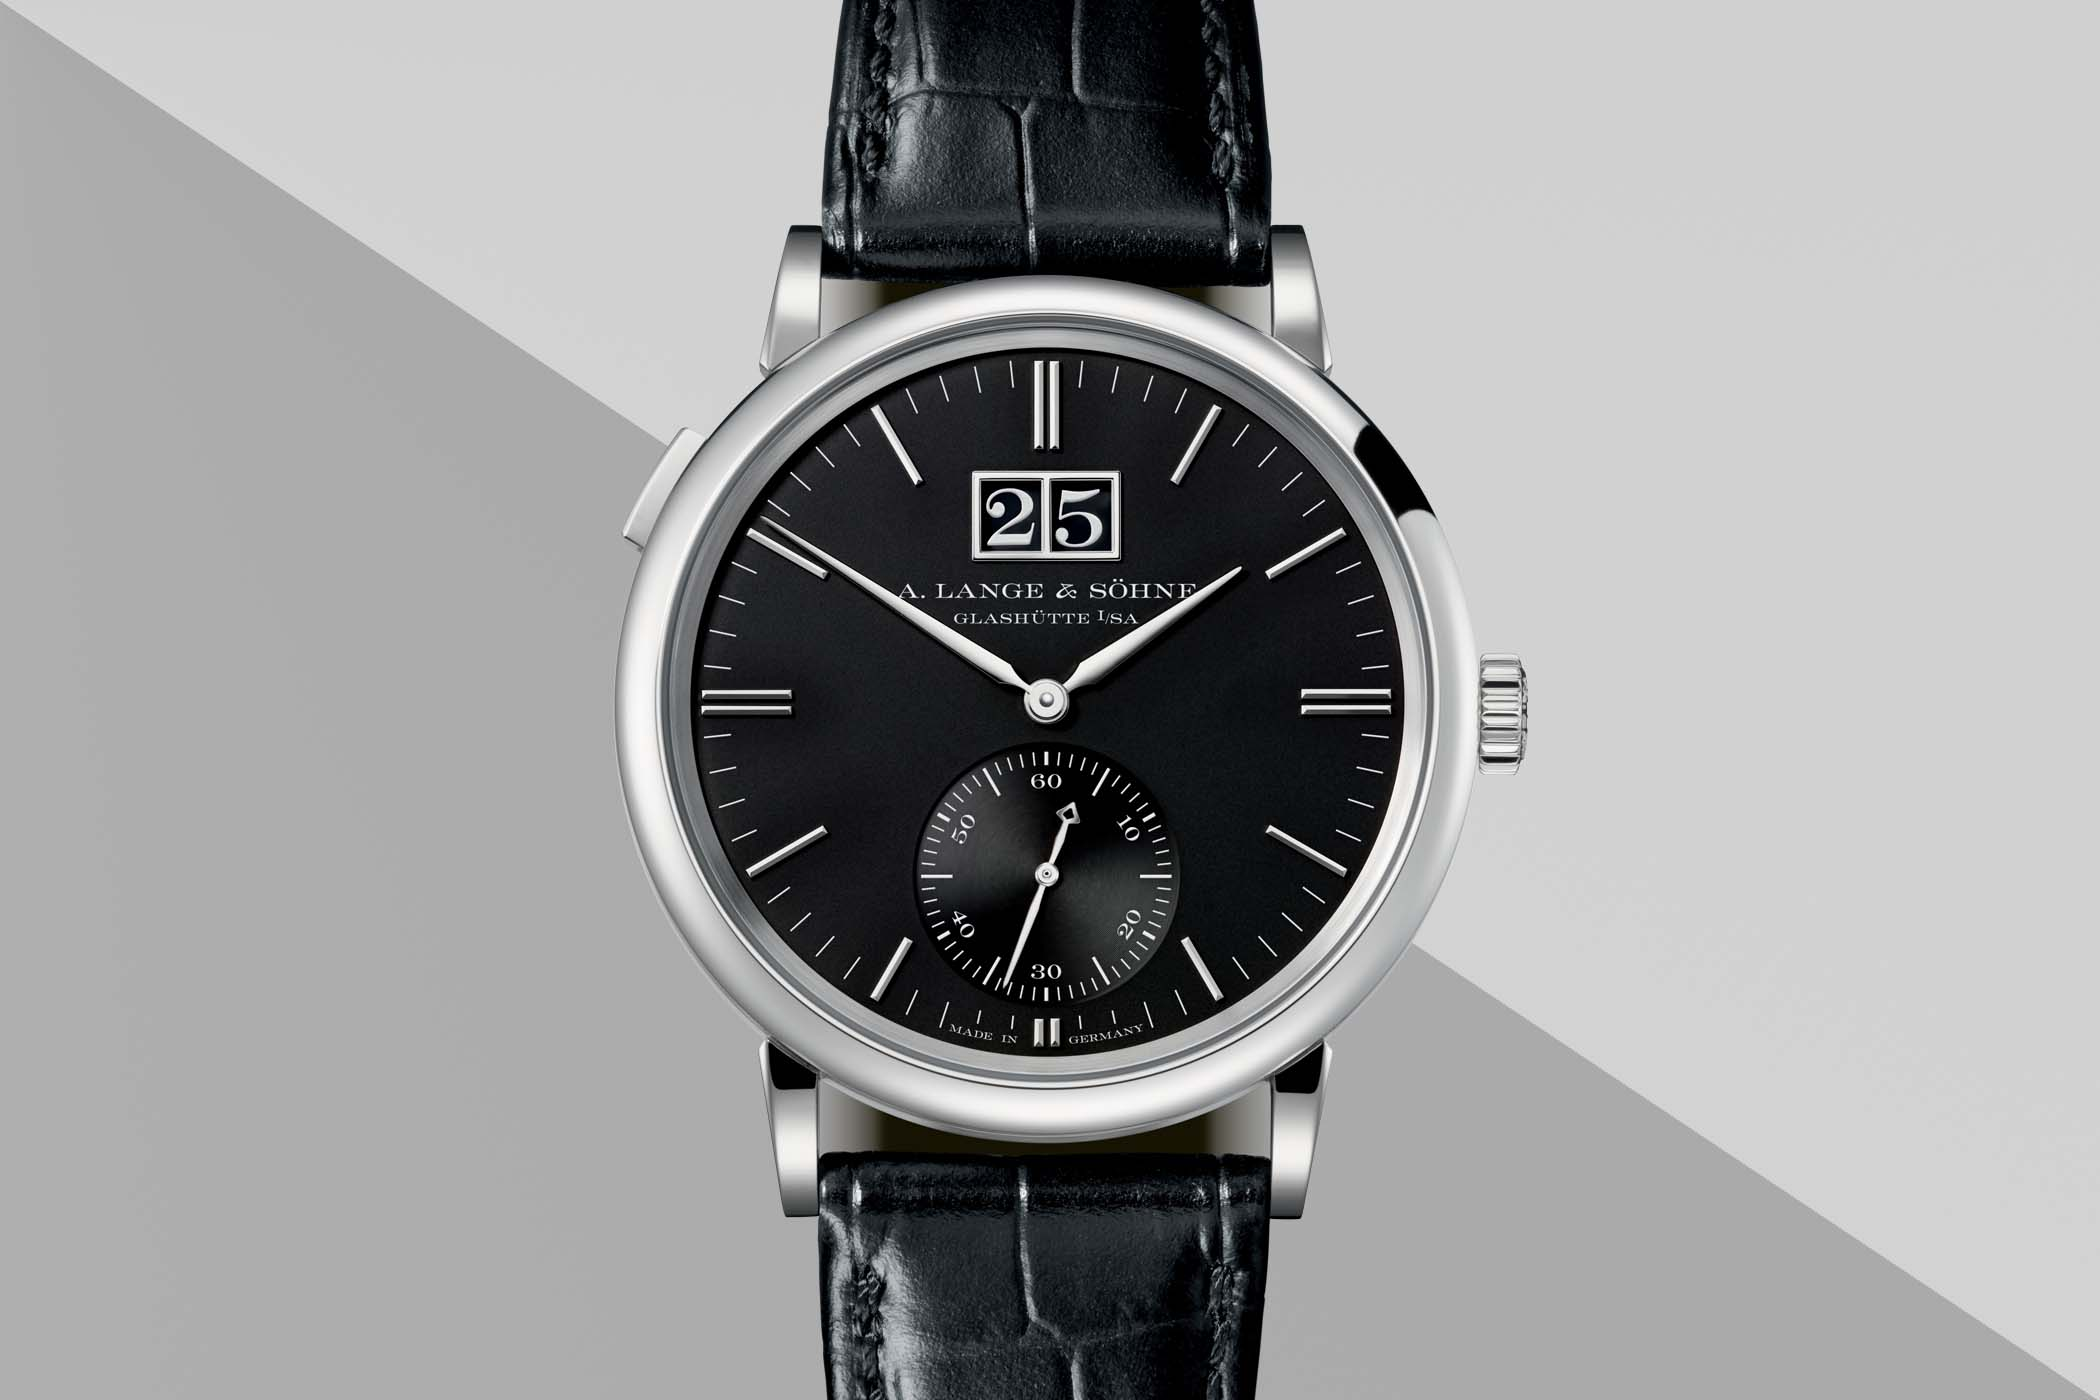 A. Lange and Sohne outsize Date ALS_381_032 - SIHH 2018